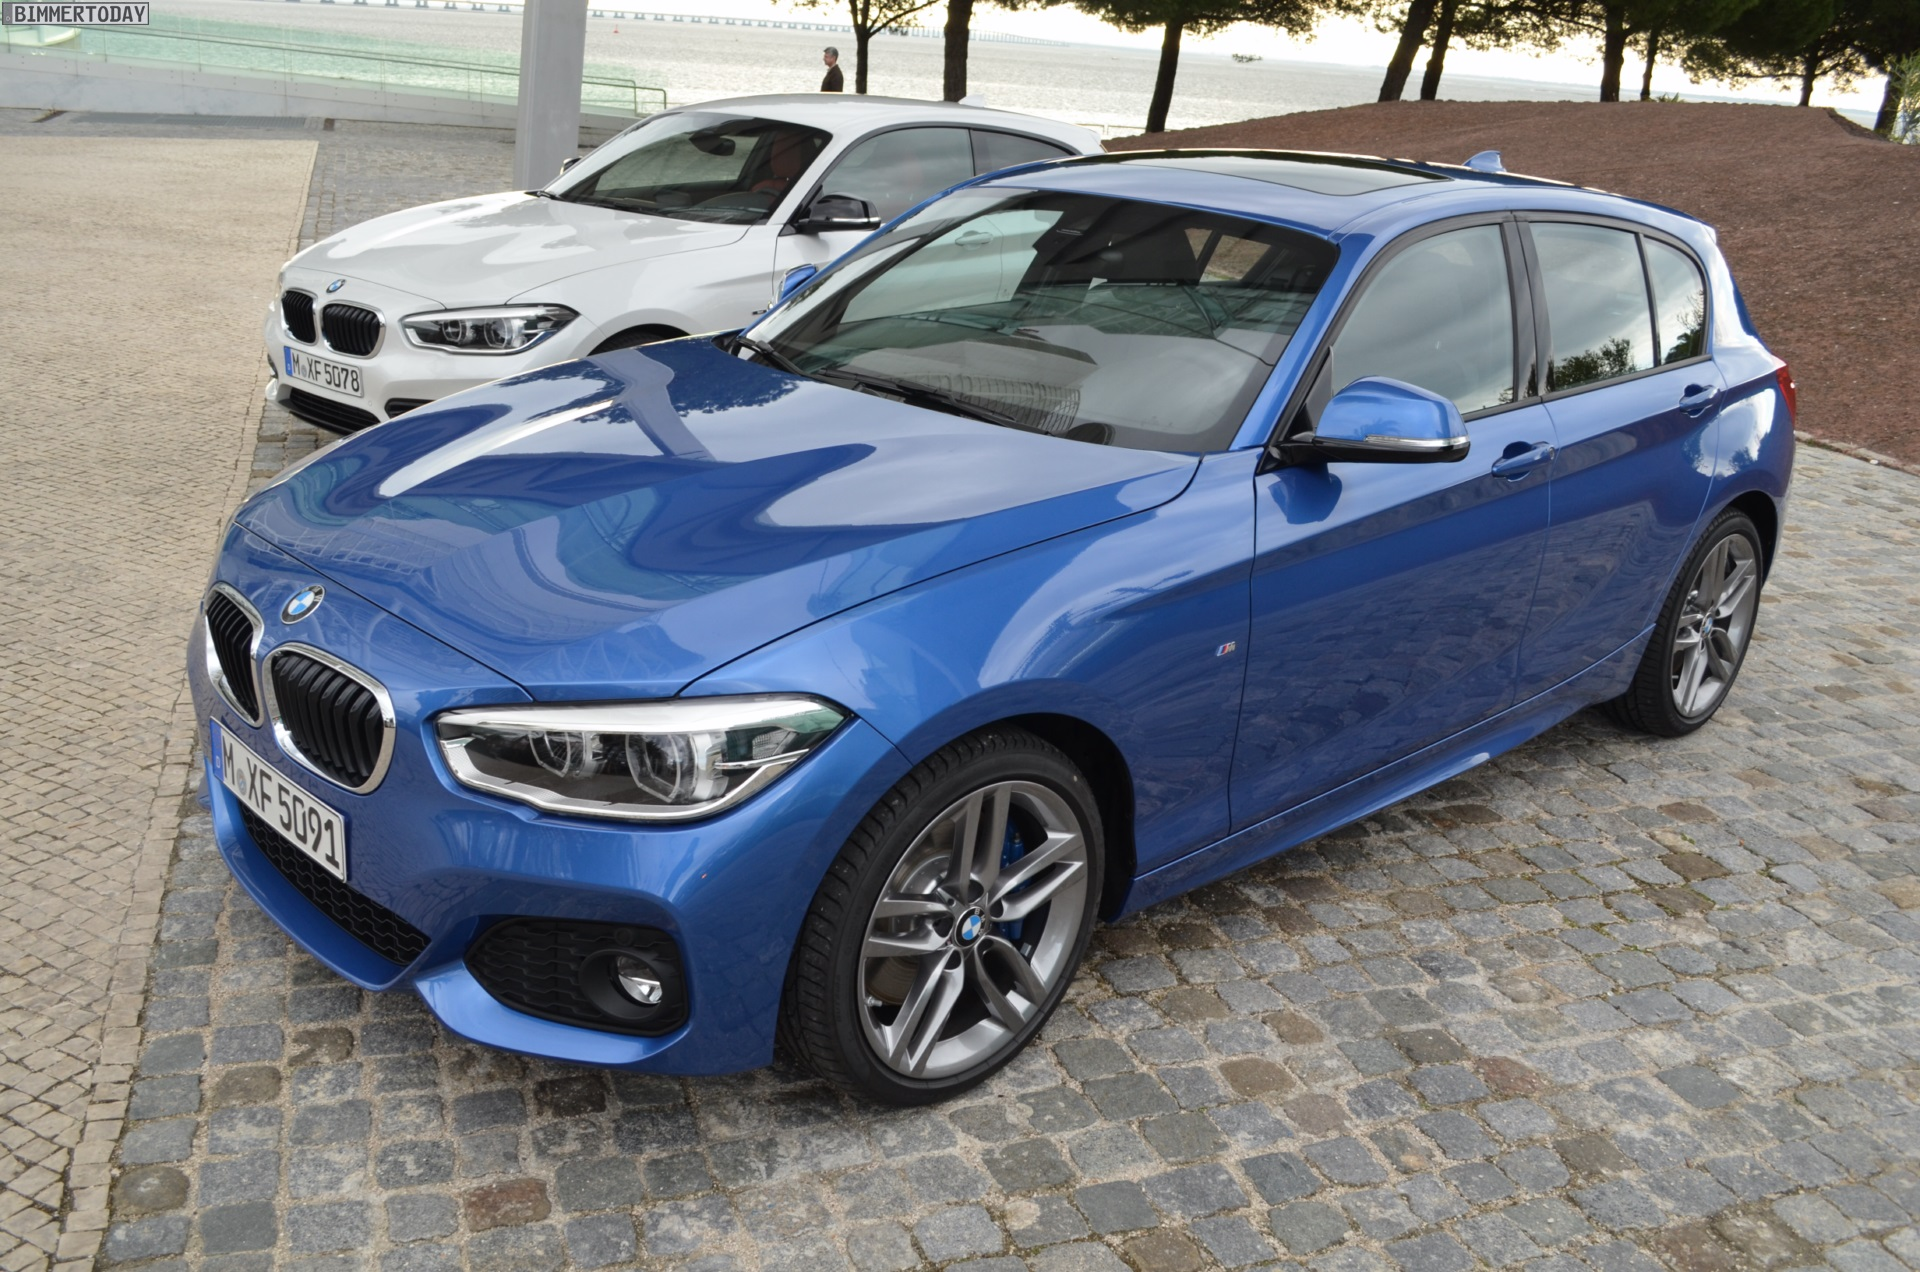 2015 Bmw 1 Series Facelift With M Sport Package In Estoril